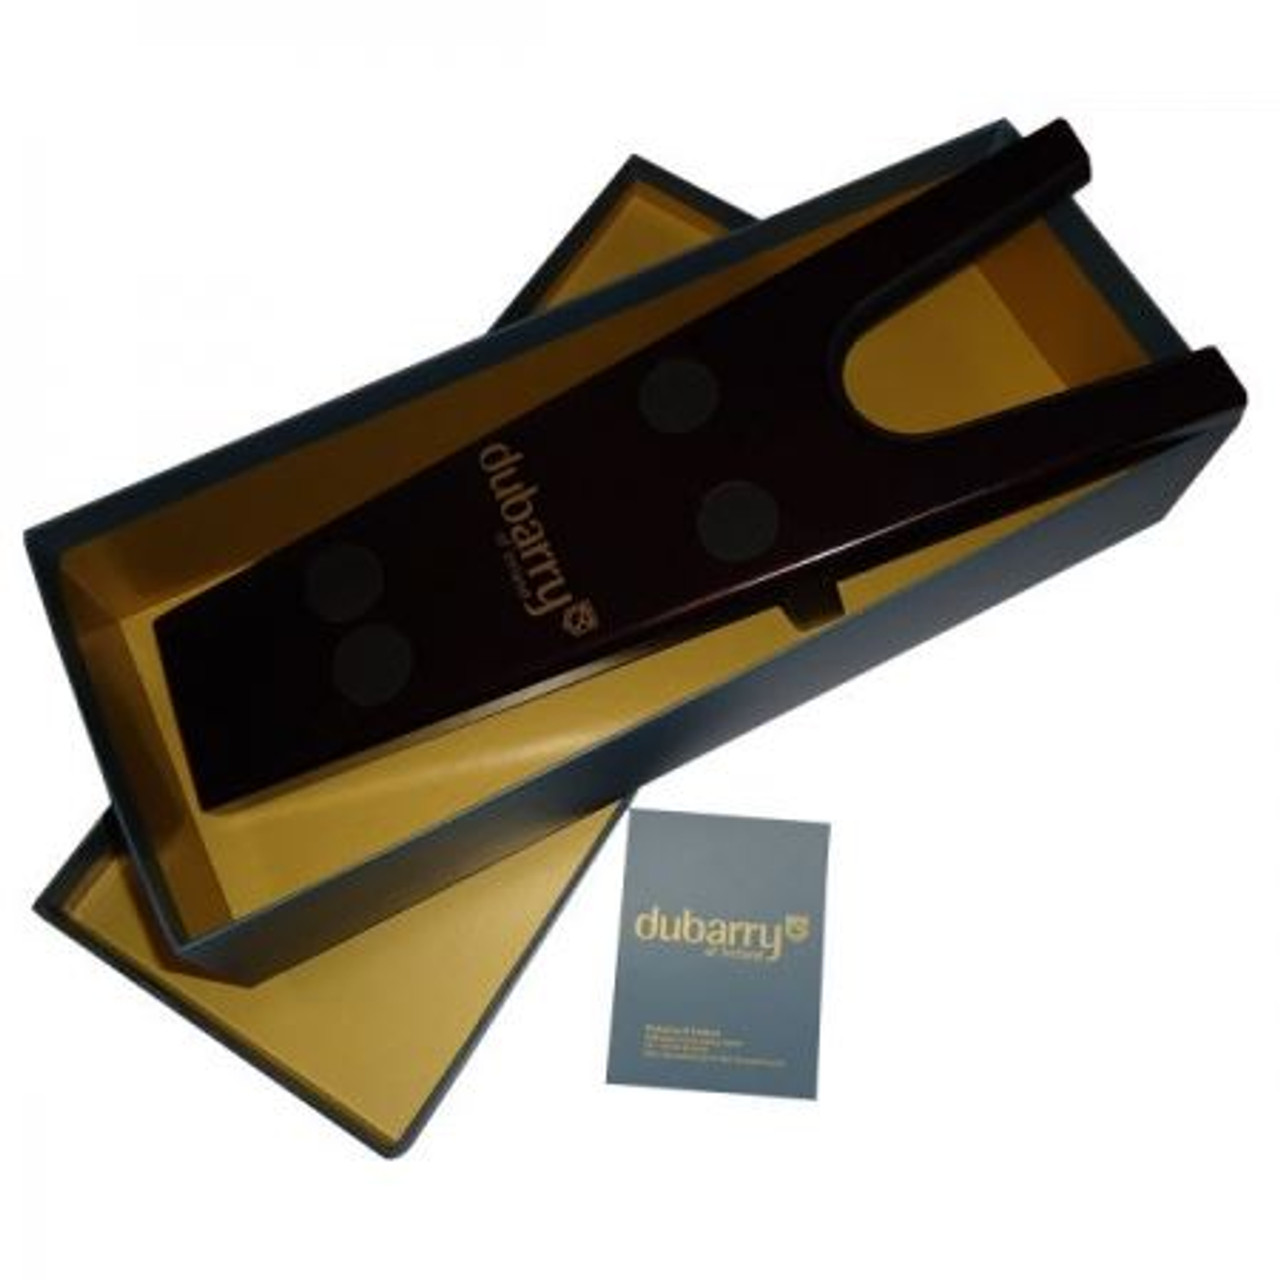 Dubarry Wooden Boot Jack Boxed